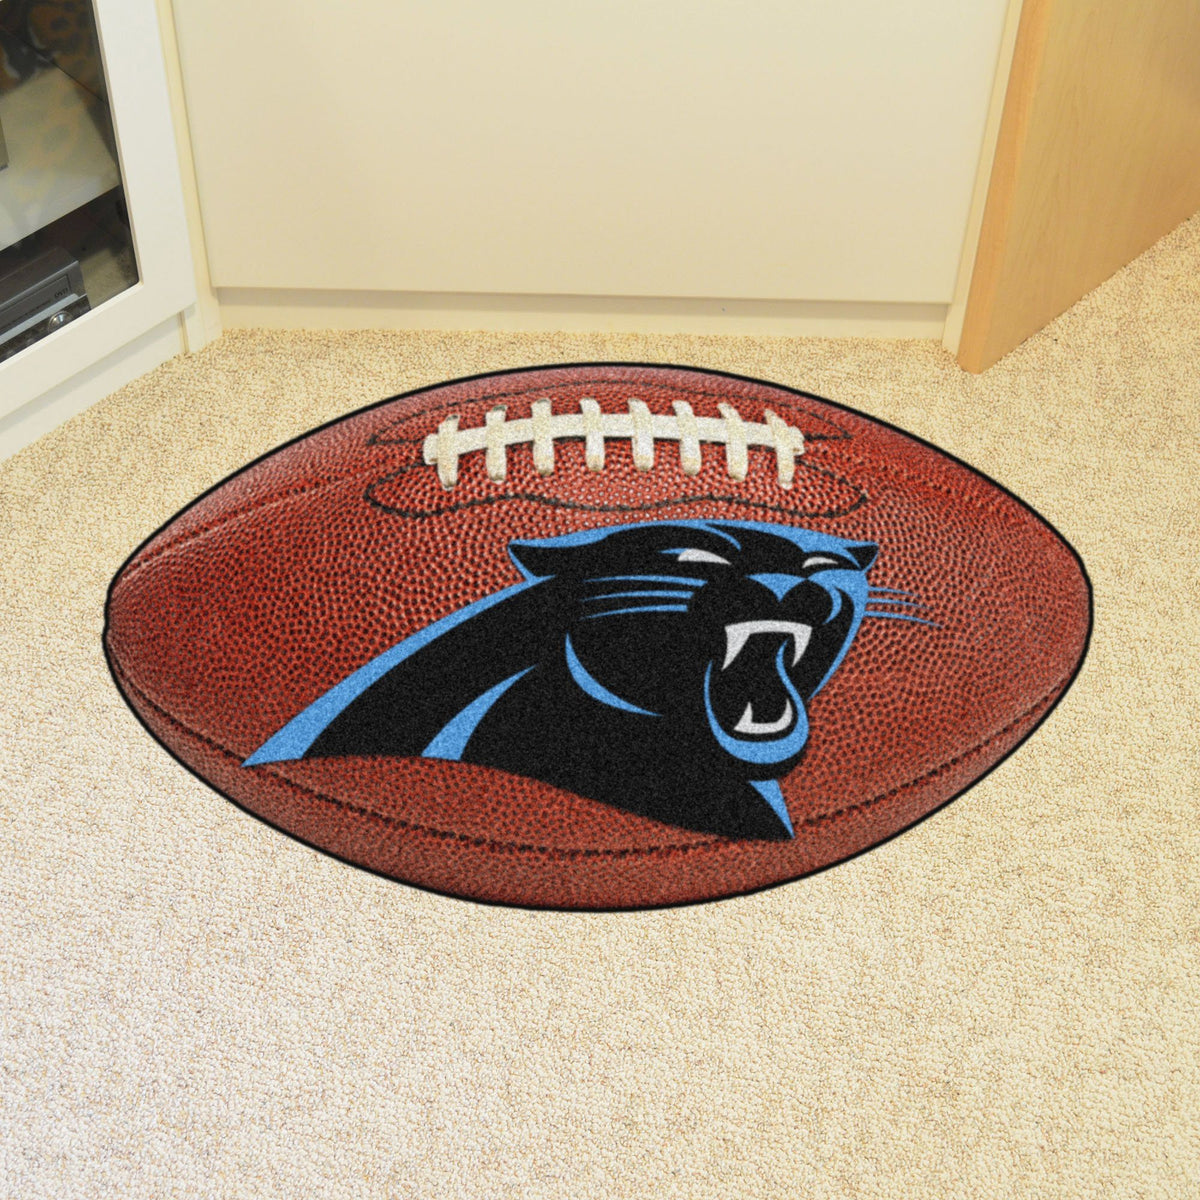 NFL - Football Mat NFL Mats, Custom Shape Rugs, Football Mat, NFL, Home Fan Mats Carolina Panthers